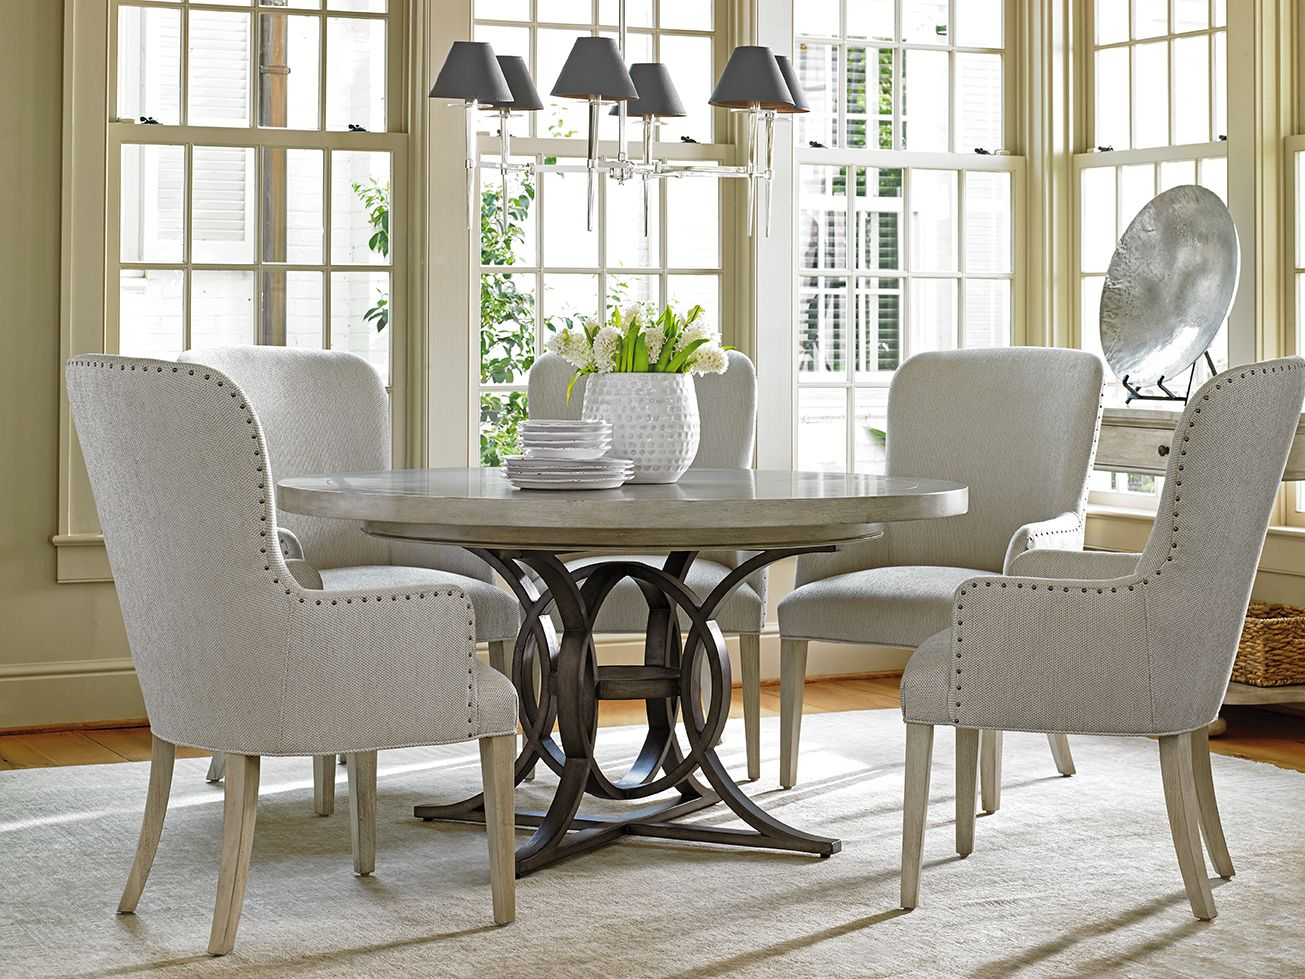 Shop For The Lexington Oyster Bay 6 Pc Dining Set At Sprintz Furniture    Your Nashville, Franklin, And Greater Tennessee Furniture U0026 Mattress Store